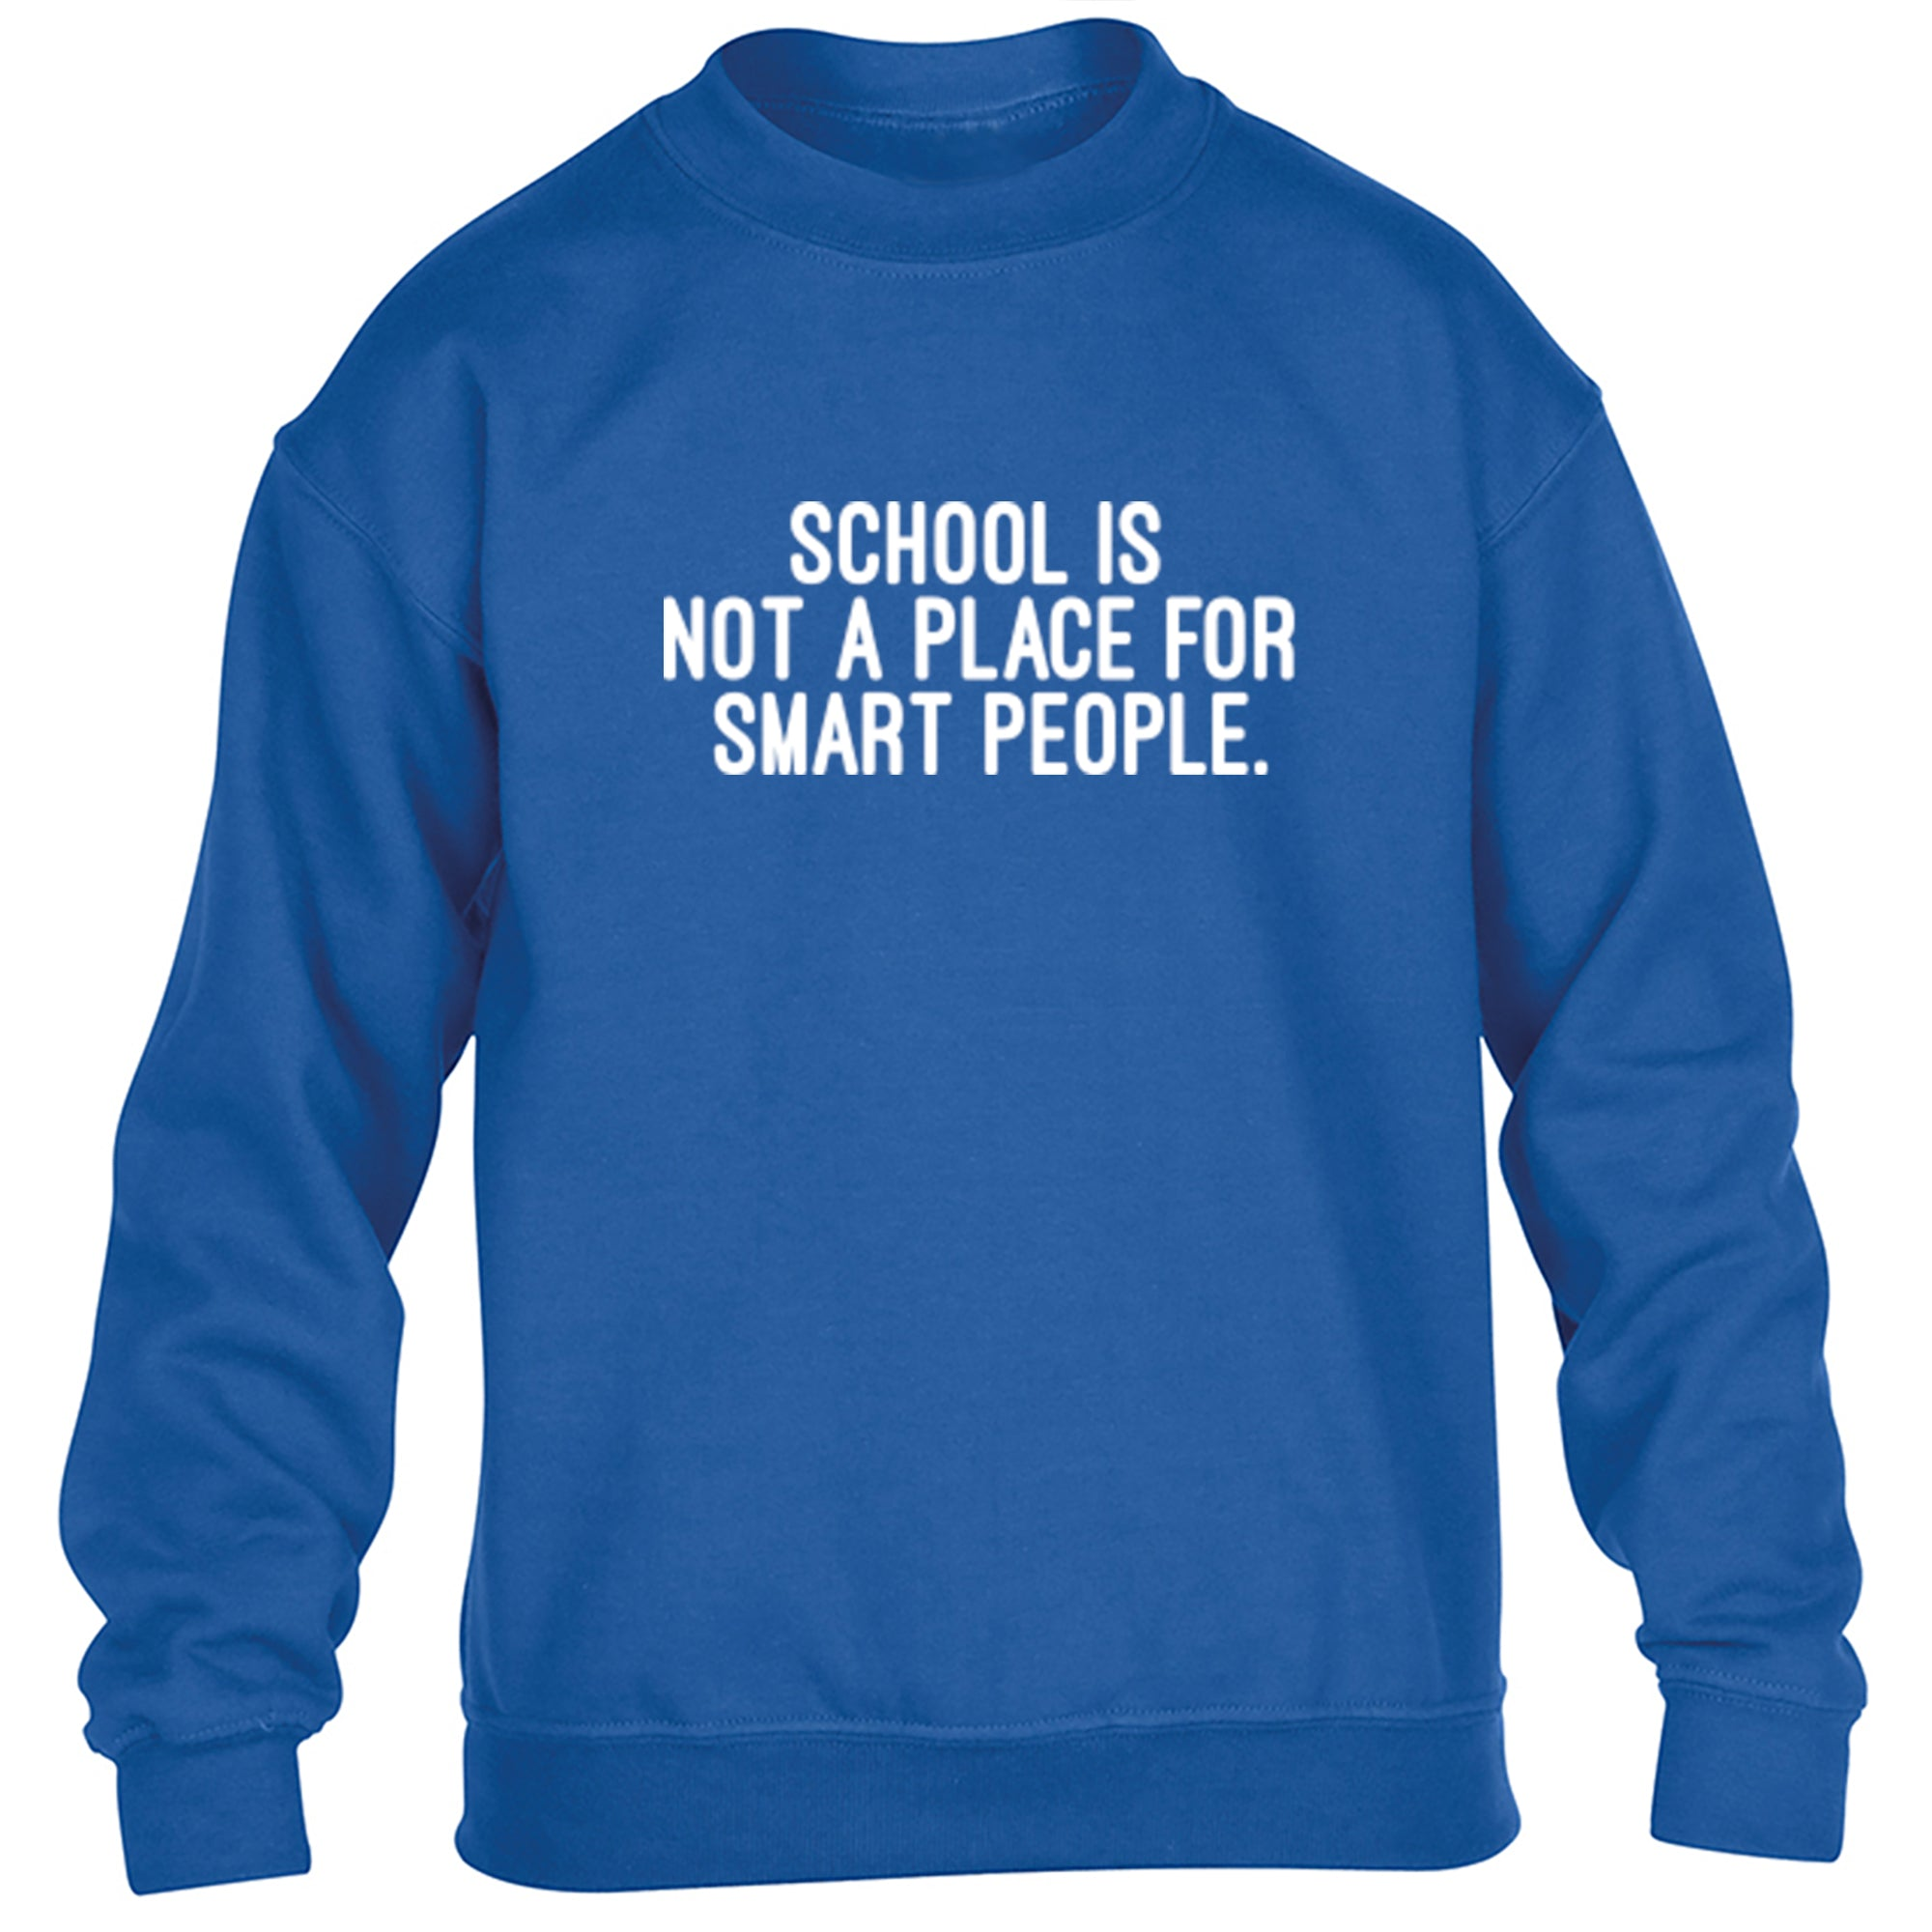 School Is Not A Place For Smart People Childrens Ages 3/4-12/14 Unisex Jumper S0404 - Illustrated Identity Ltd.